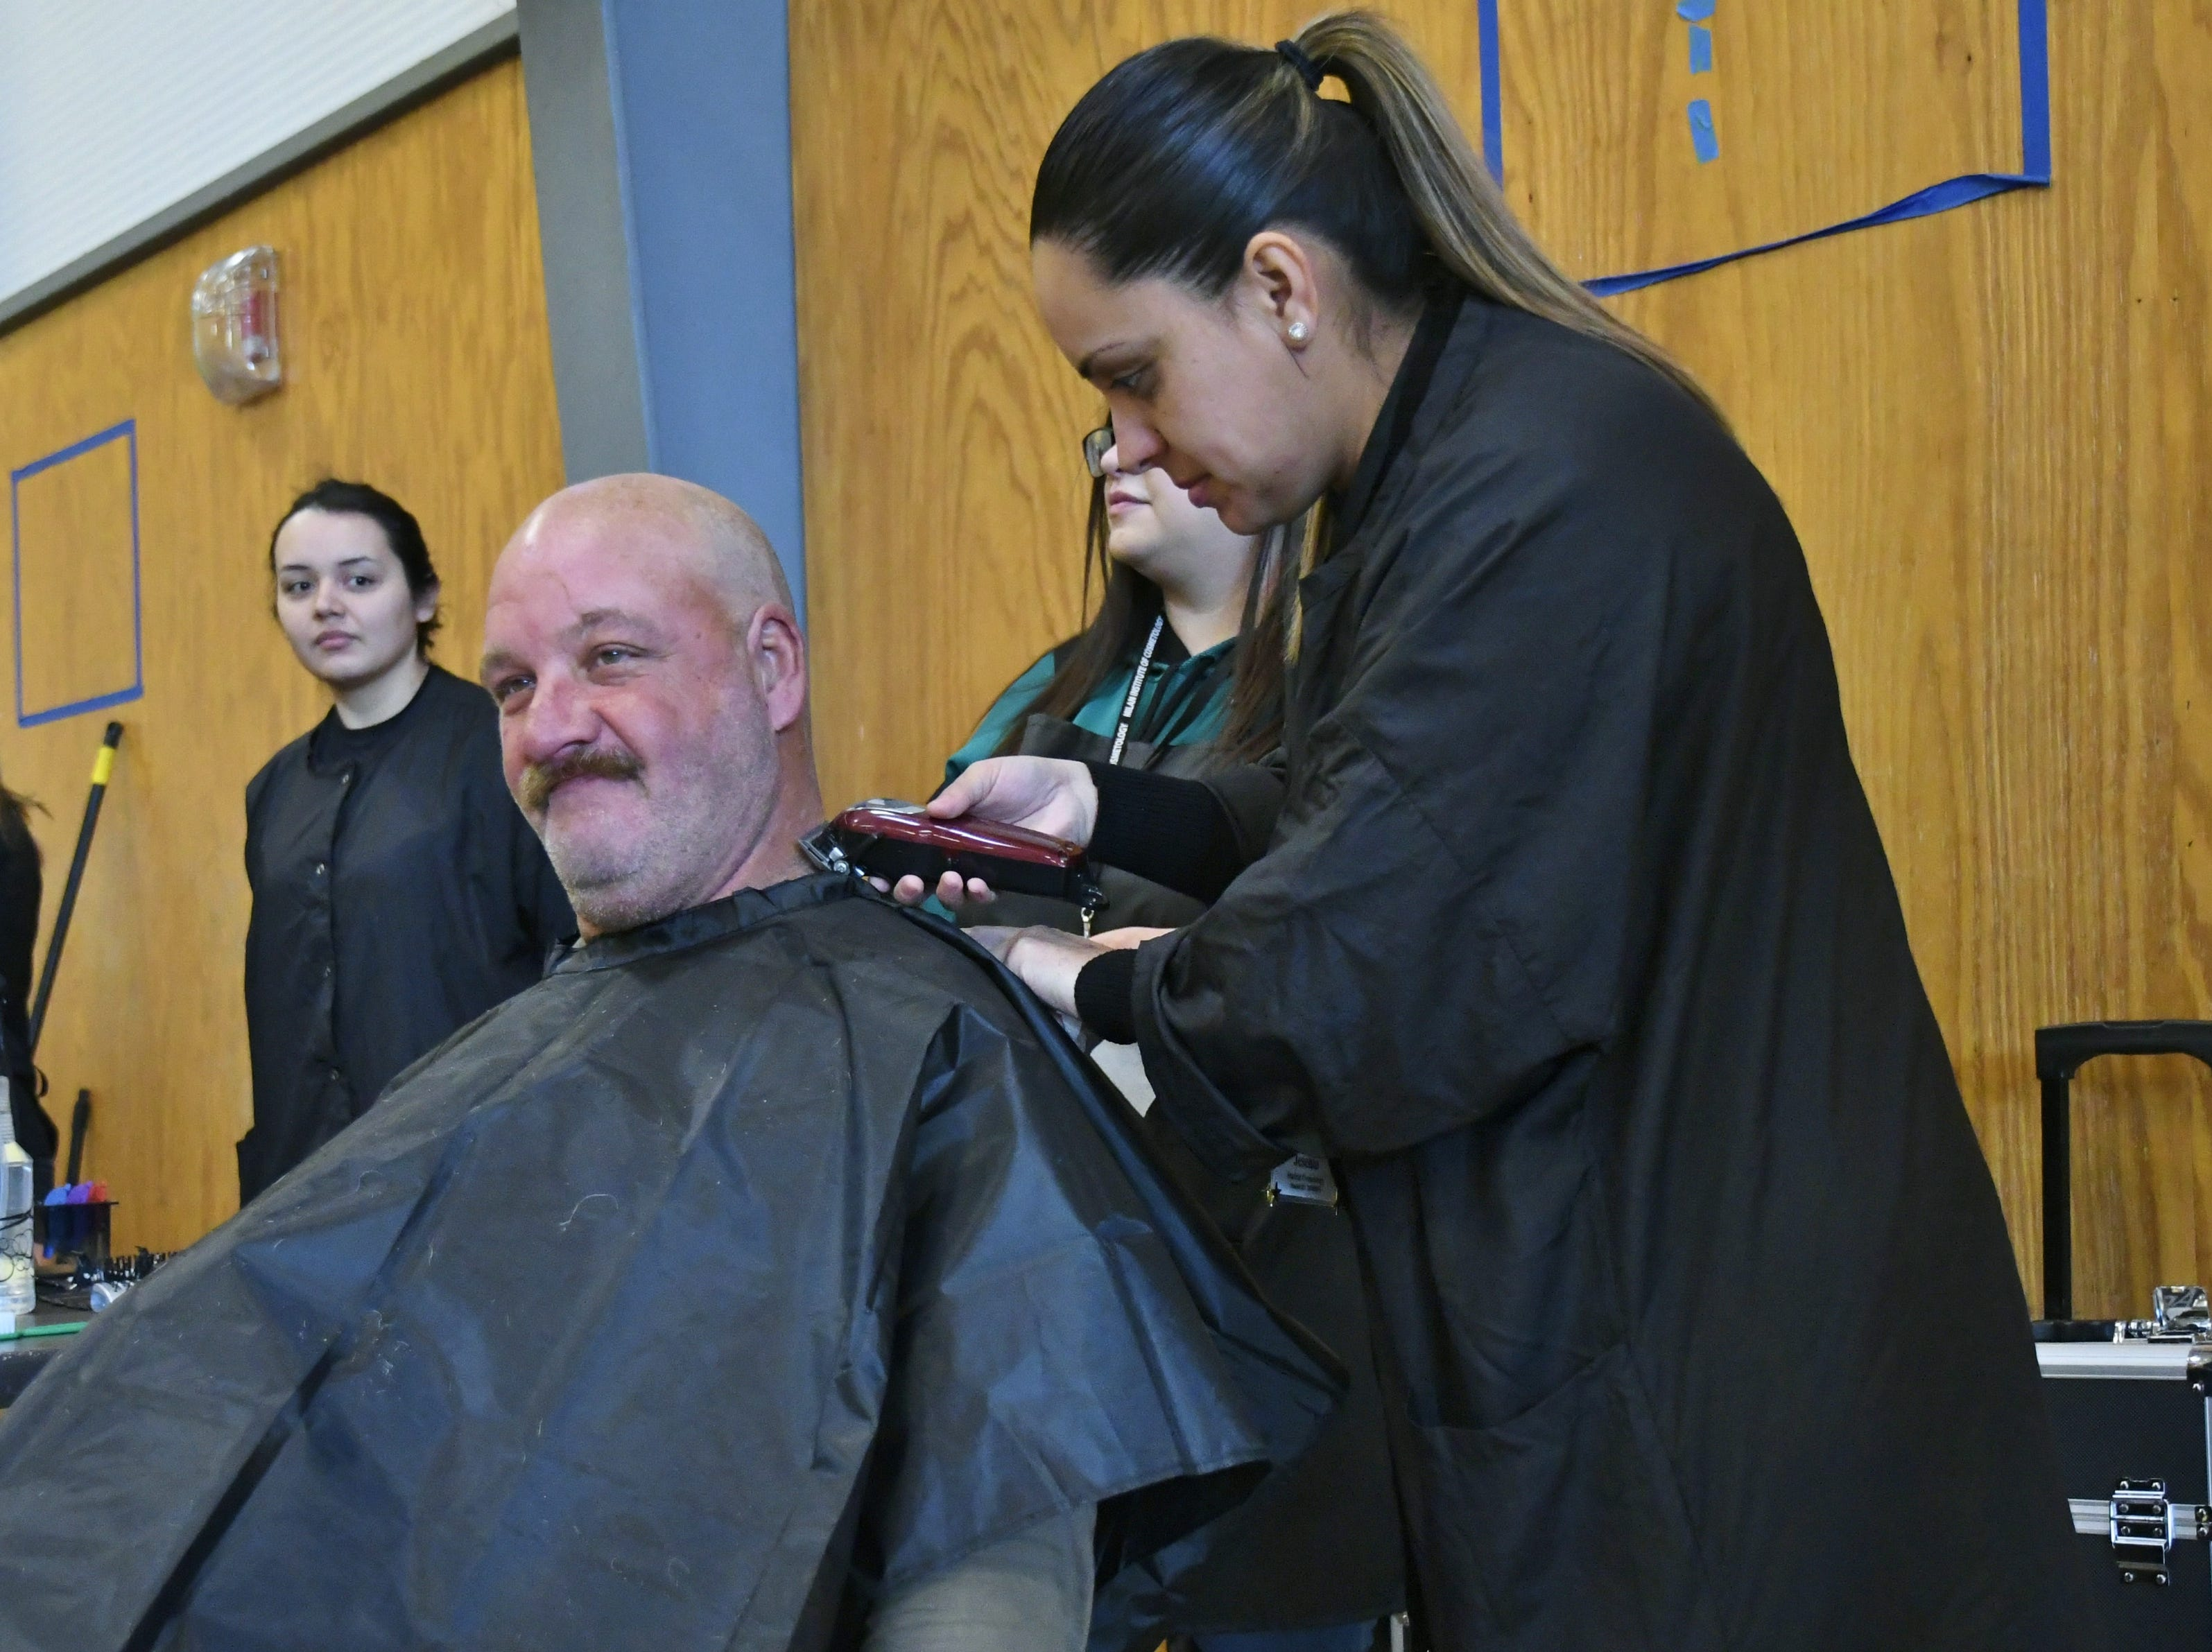 Michael Morgan gets a haircut from Jesenia Trujillo during Project Homeless Connect in Visalia.